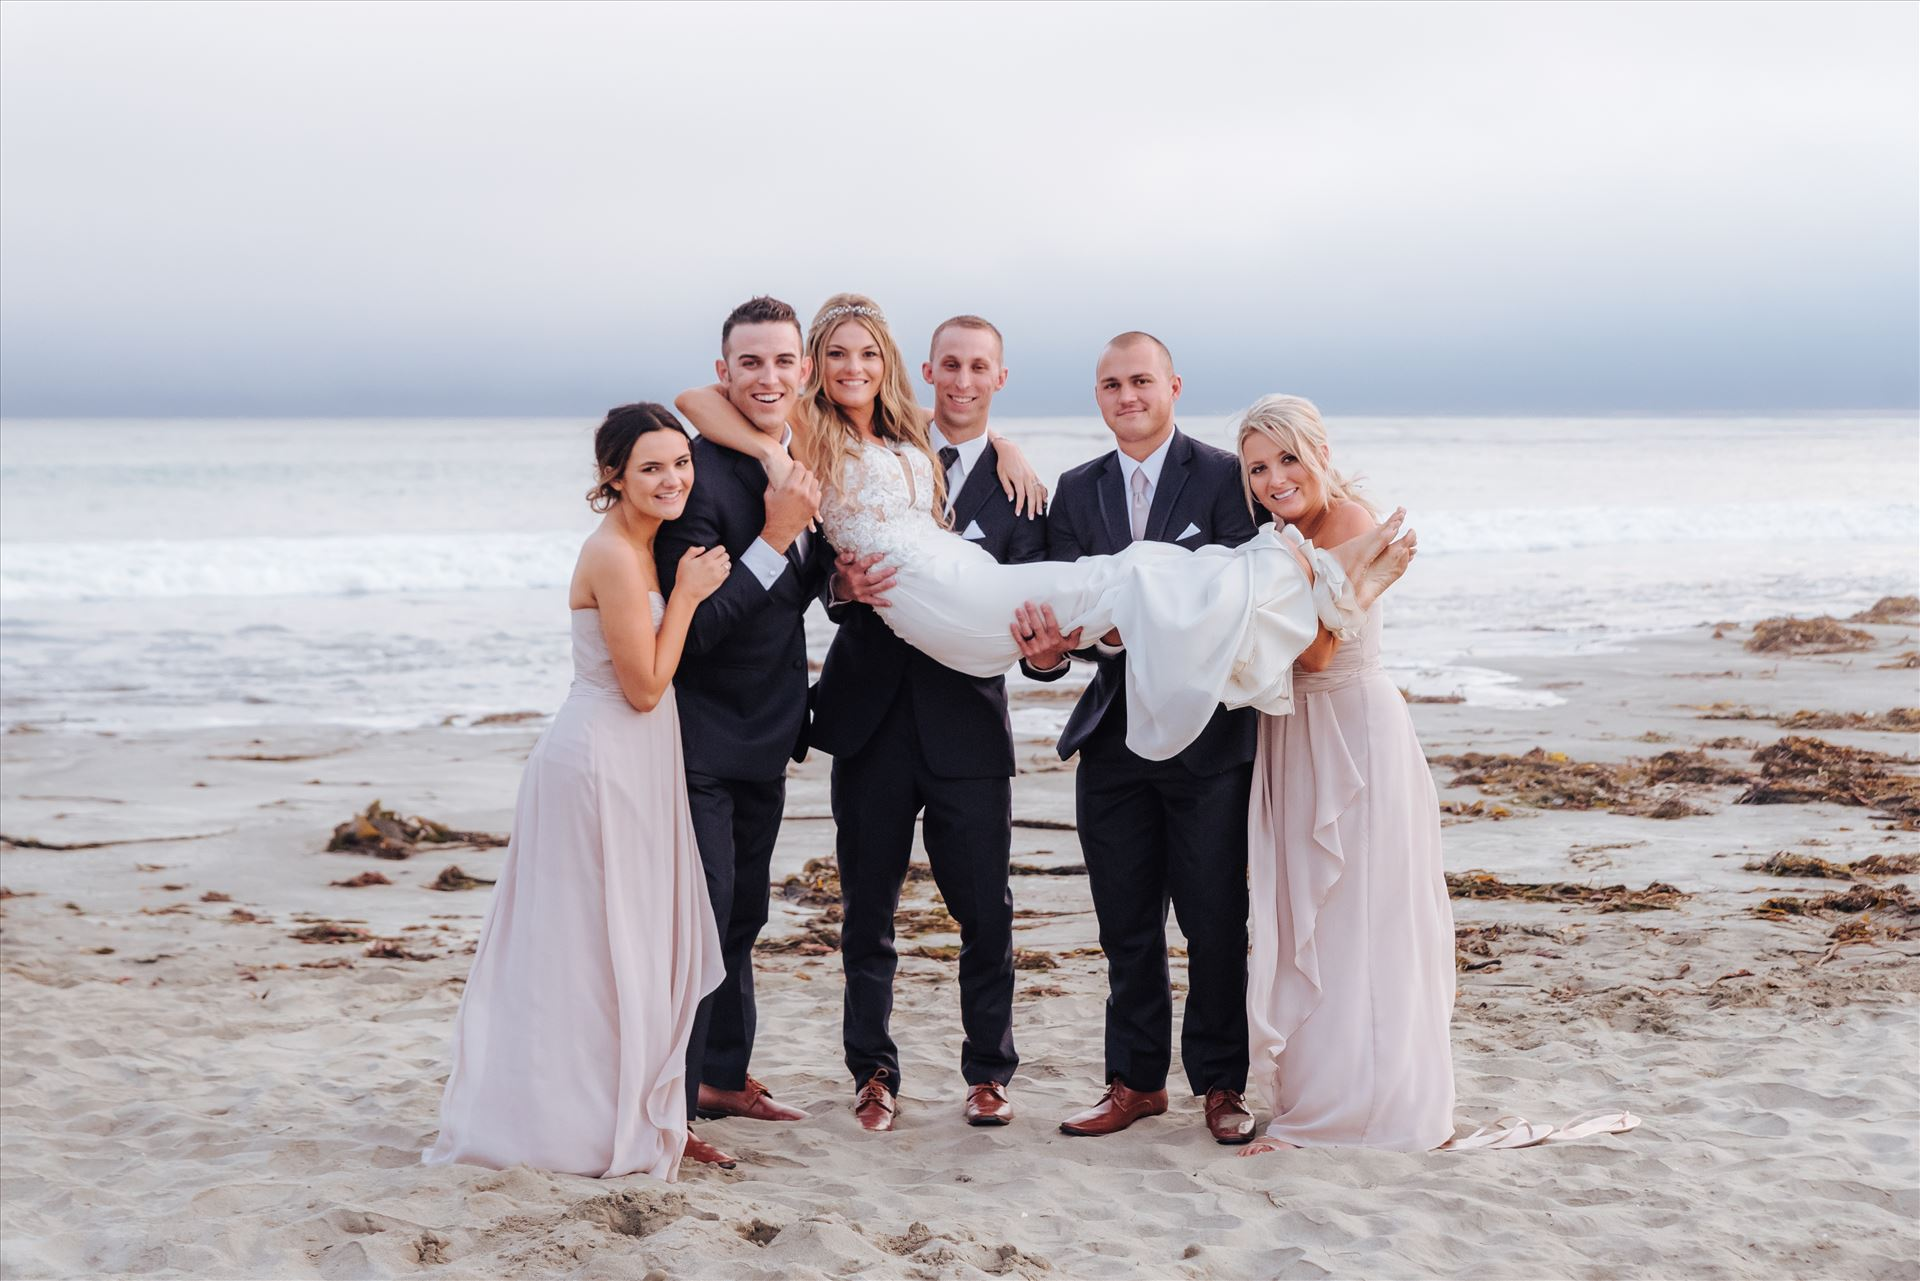 Courtney and Doug 66 Mirror's Edge Photography, San Luis Obispo Wedding Photographer captures Cayucos Wedding on the beach and bluffs in Cayucos Central California Coast. Wedding Party Bridal Party at the Beach by Sarah Williams